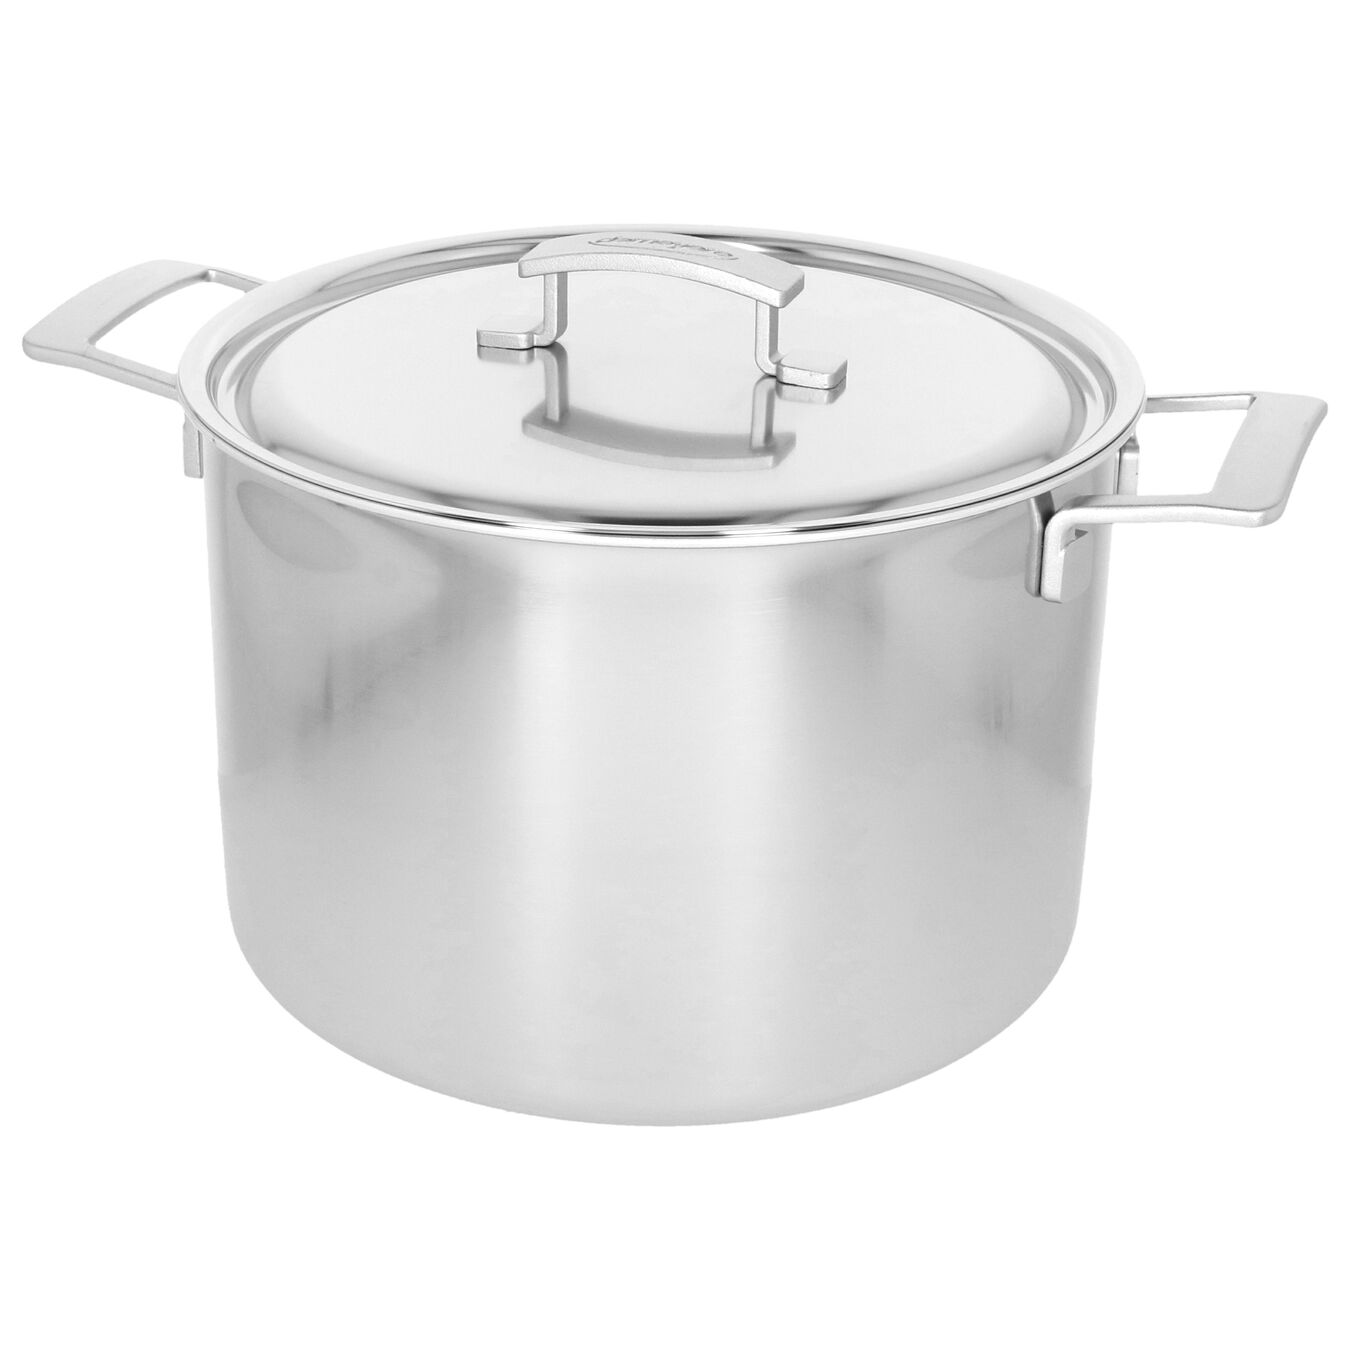 11.5 l 18/10 Stainless Steel Stock pot with lid,,large 2